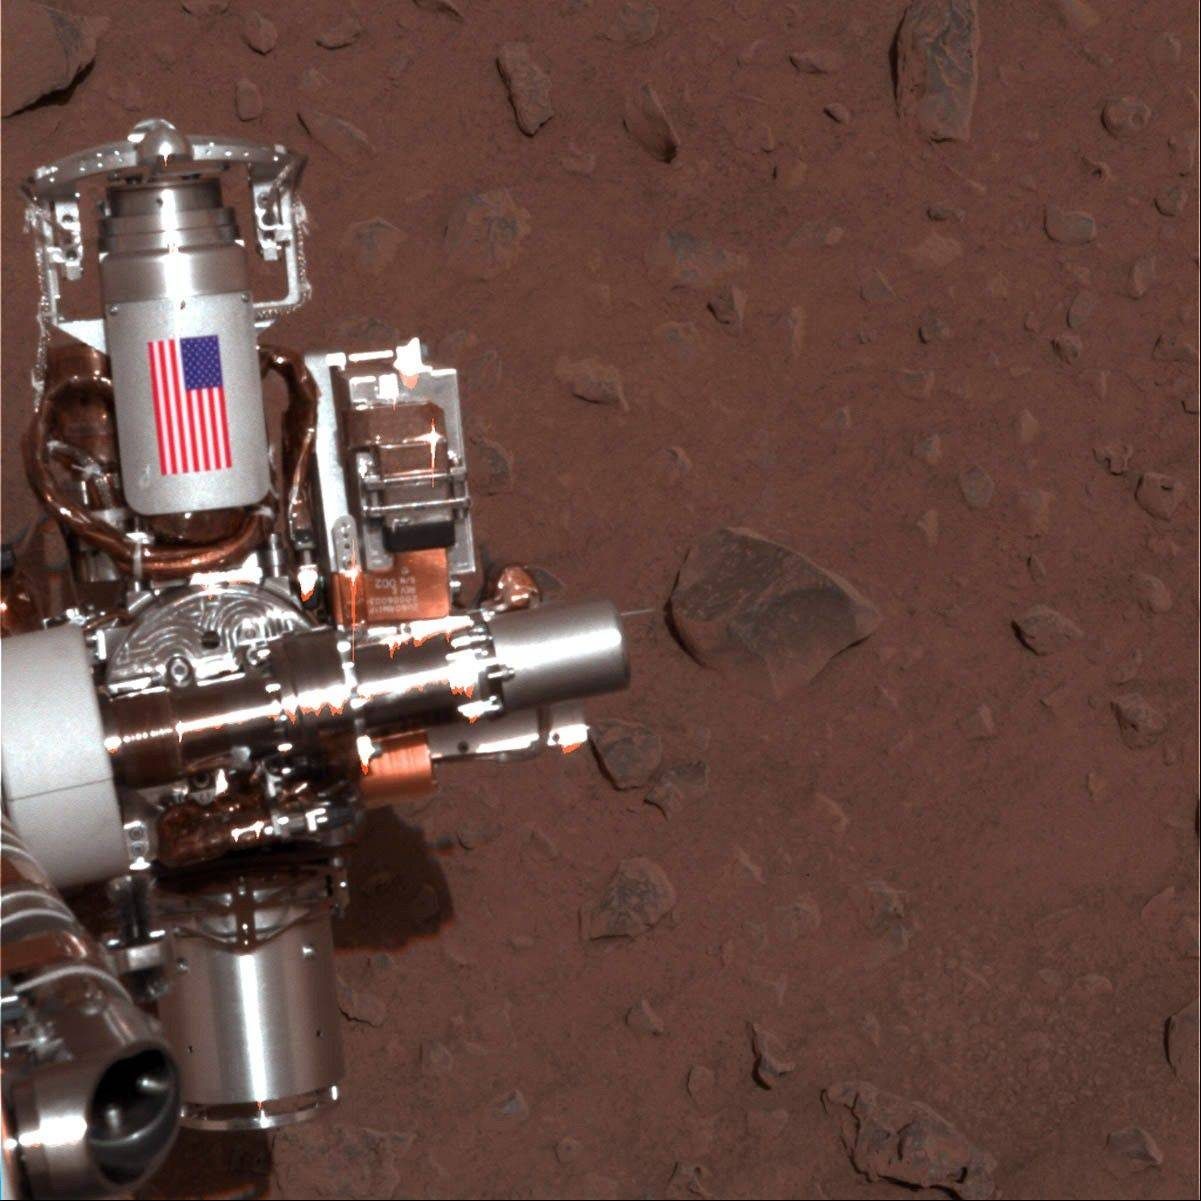 ASSOCIATED PRESS This image provided by NASA shows the piece of metal with the American flag on it is made of aluminum recovered from the site of the World Trade Center towers in New York City on Mars Rover Spirit that serves as a cable guard for Spirit�s rock abrasion tool as well as a memorial to the victims of the Sept. 11, 2001, terrorist attacks.